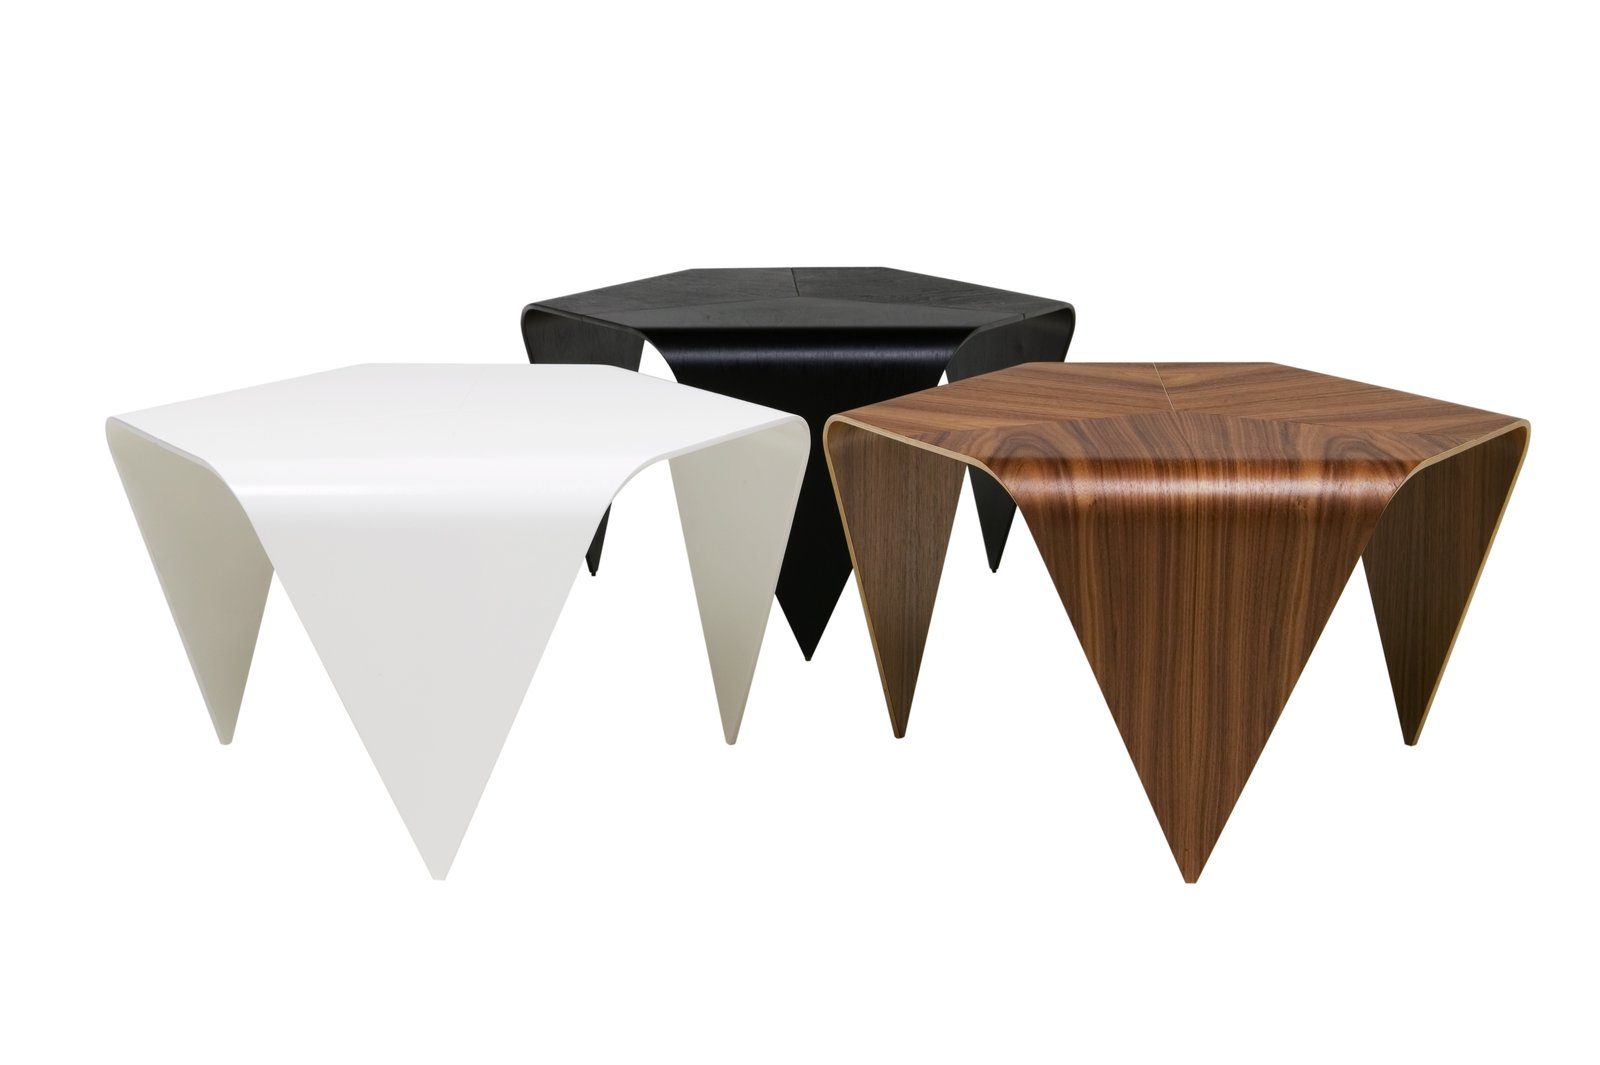 Tapiovarra's 1954 Trienna coffee table is made of three pieces smoothly conjoined to form one surface with six rounded edges. The tables, which are made of formed birch wood with surface veneer in walnut, are manufactured in Finland by Artek.  100+ Best Modern Seating Designs from Aalto Isn't the Only Finnish Modernist: Meet Ilmari Tapiovaara